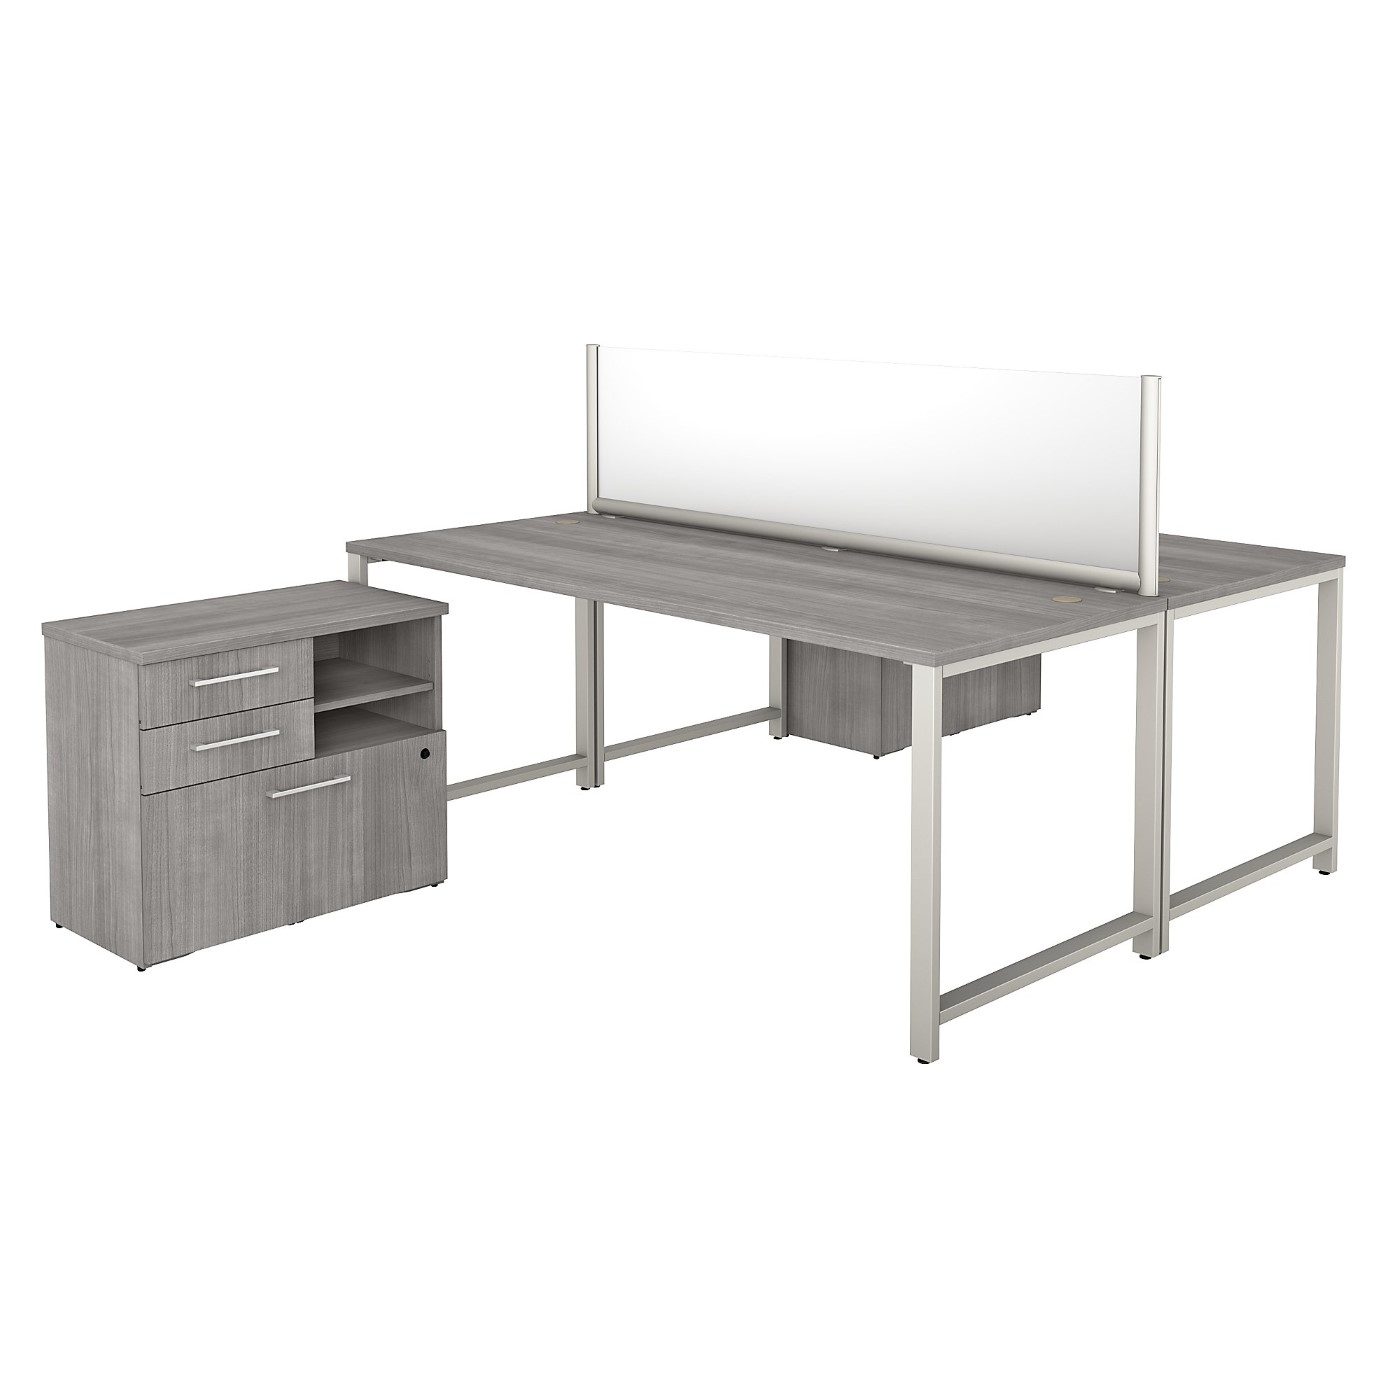 BUSH BUSINESS FURNITURE 400 SERIES 72W X 30D 2 PERSON WORKSTATION WITH TABLE DESKS AND STORAGE. FREE SHIPPING SALE DEDUCT 10% MORE ENTER '10percent' IN COUPON CODE BOX WHILE CHECKING OUT.